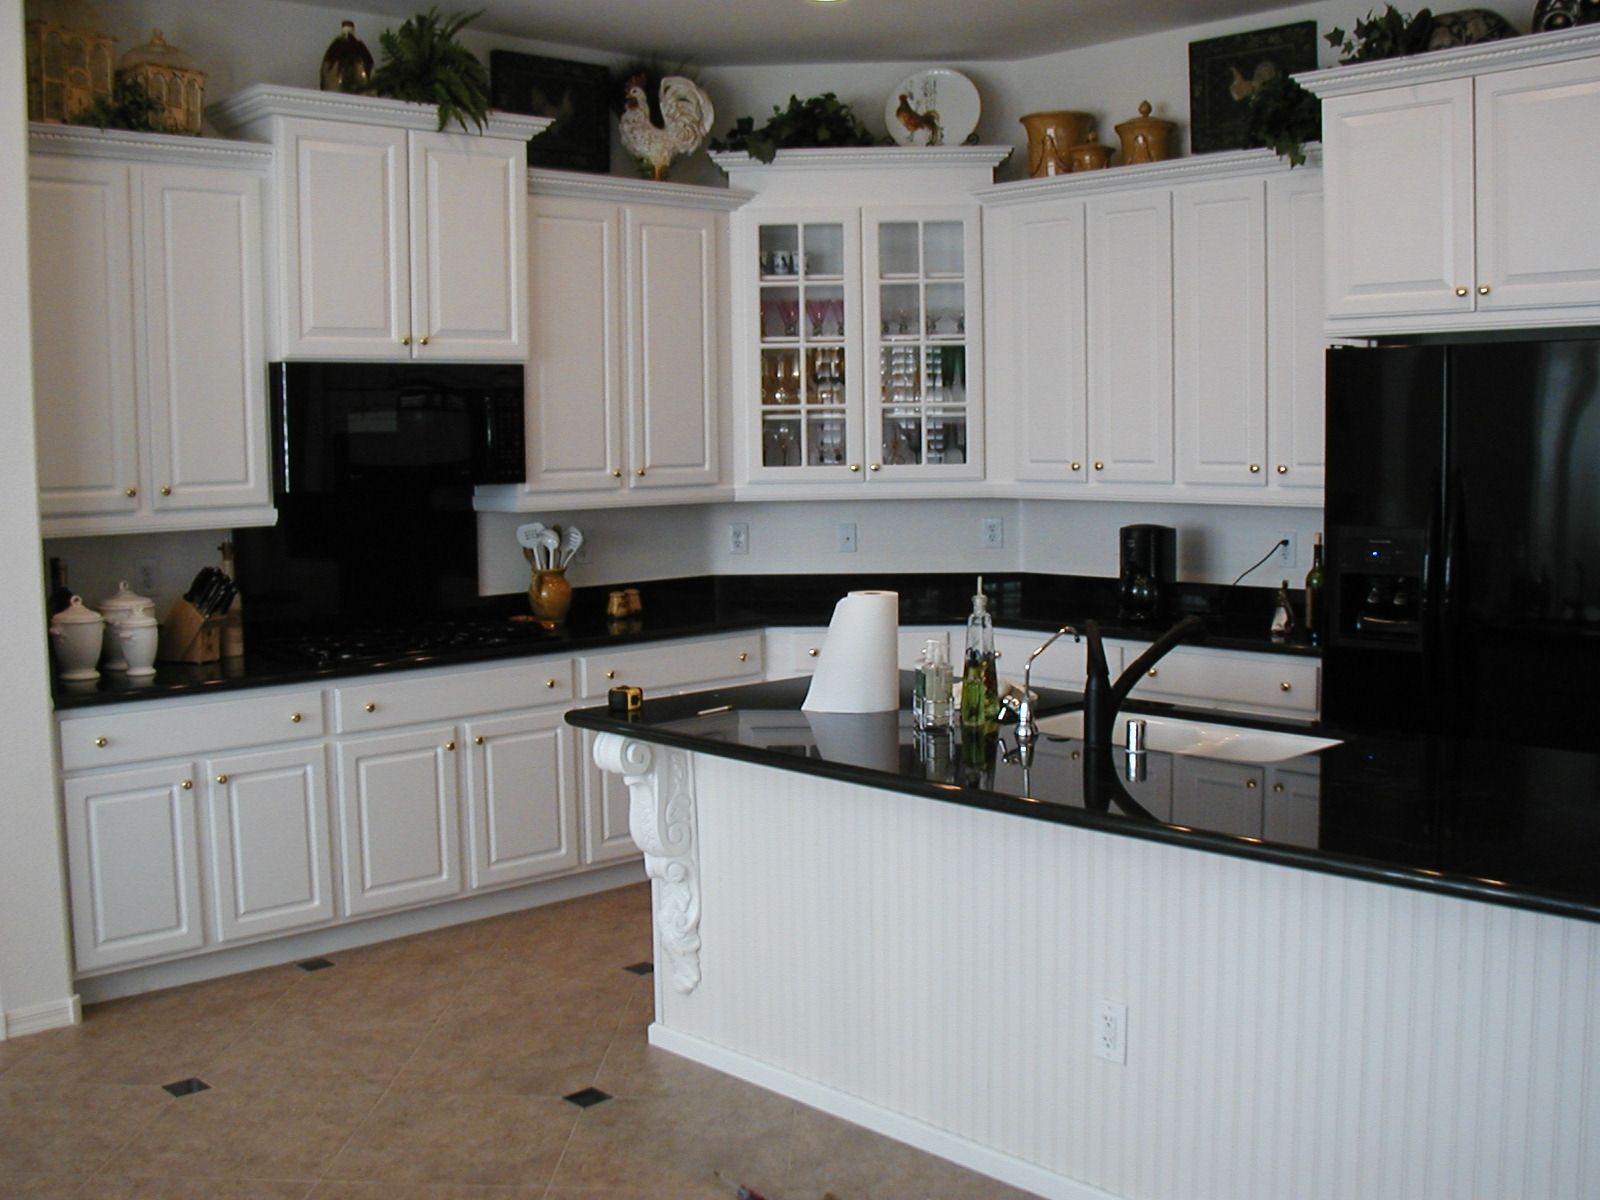 White kitchen with black appliances and black countertop